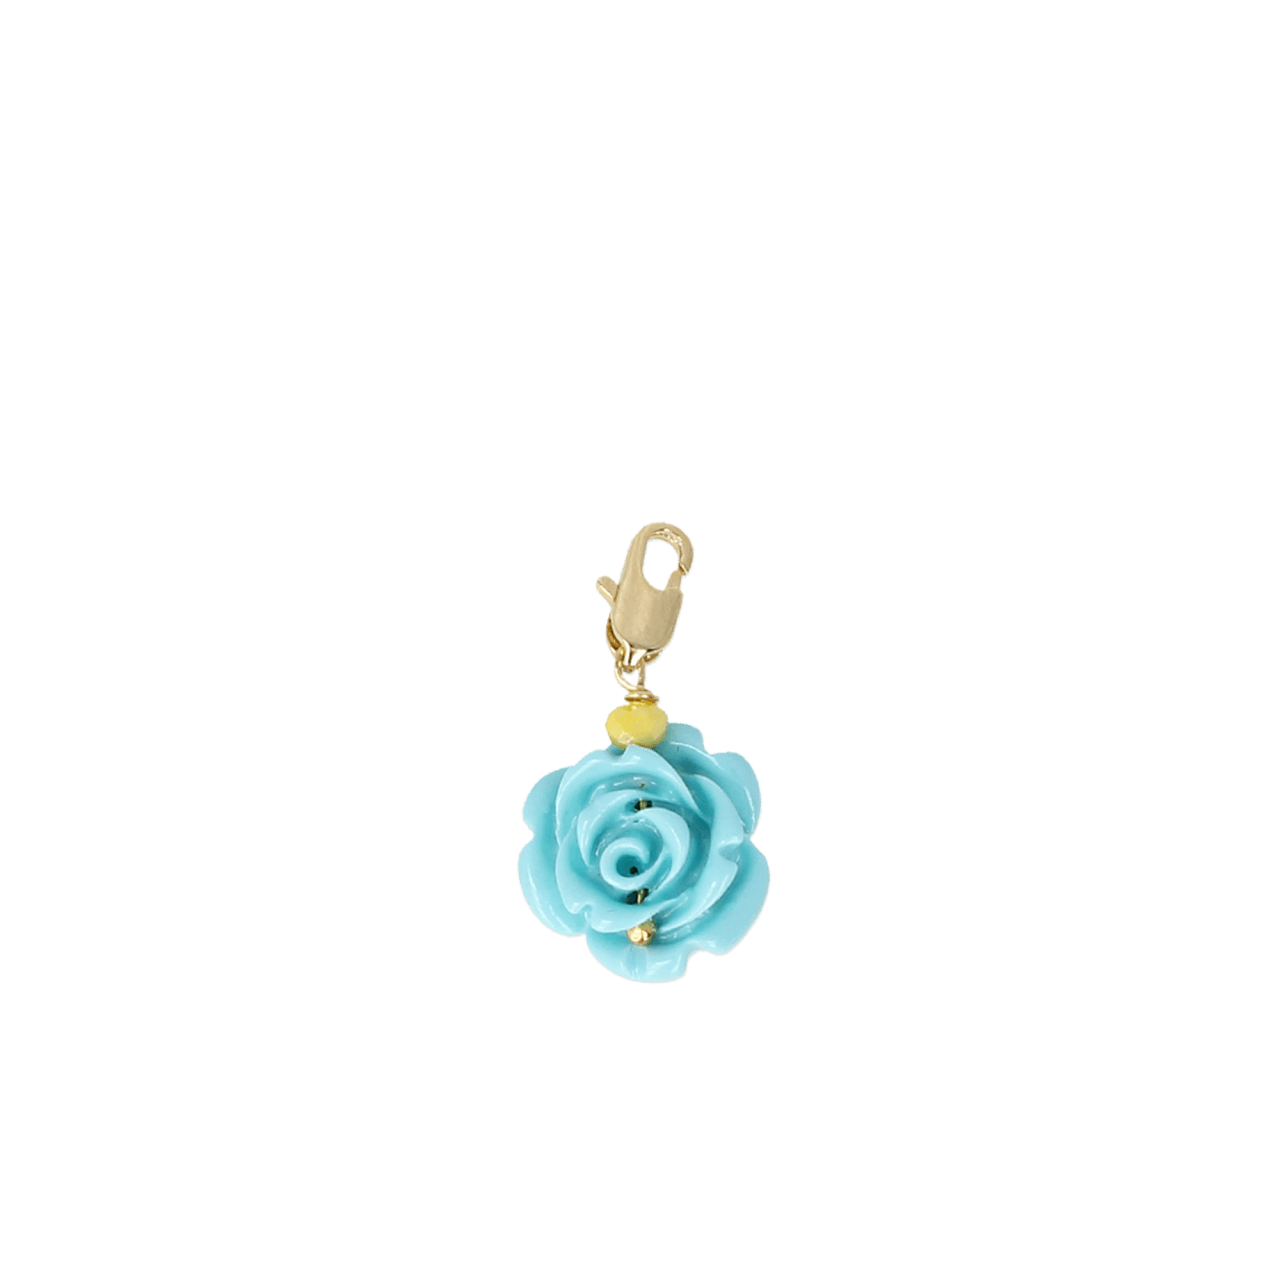 Blauwe roos small pendant